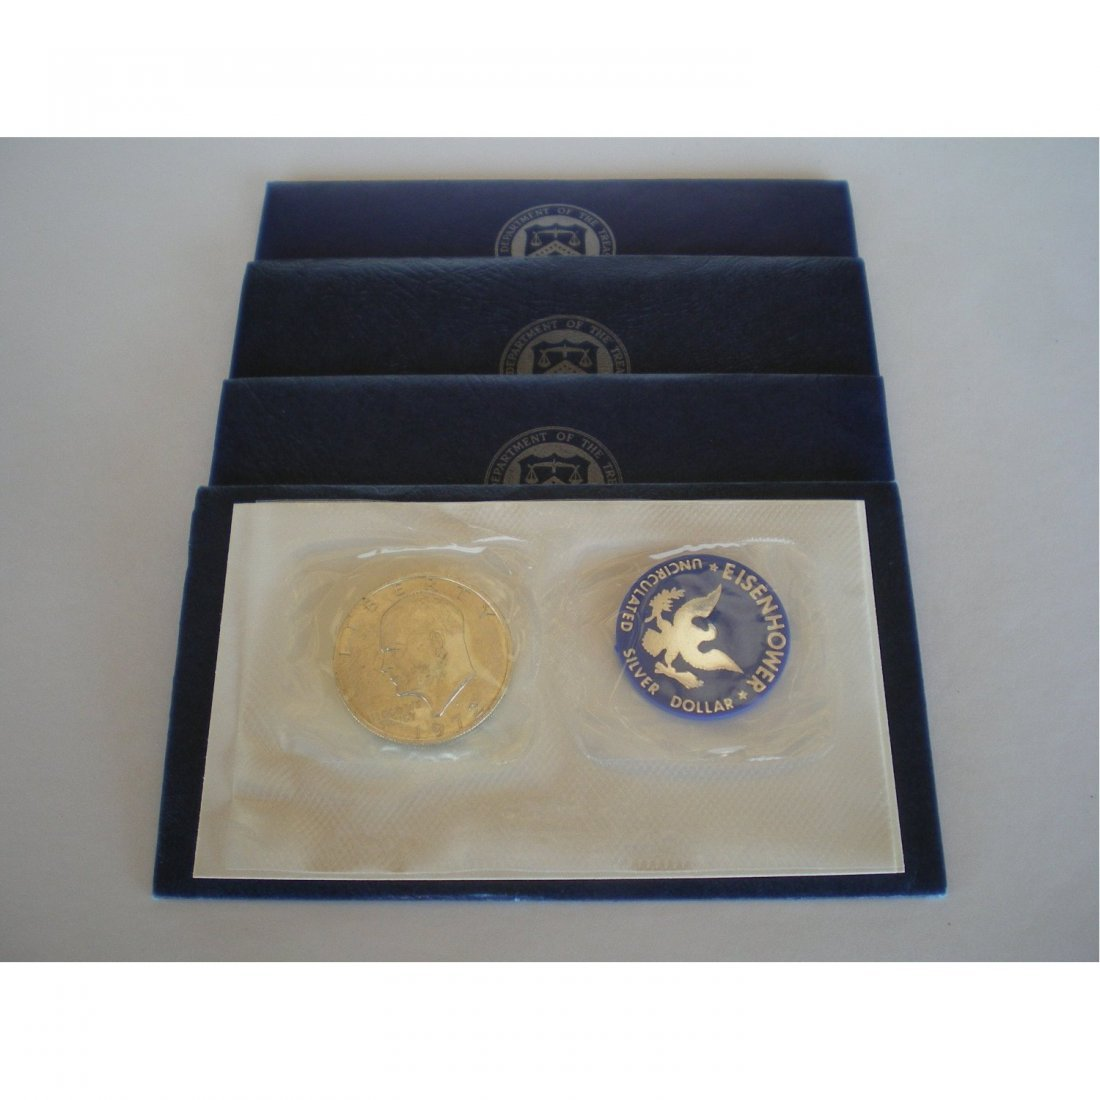 4A: Eisenhower Uncirculated Silver Dollar - Blue Pack